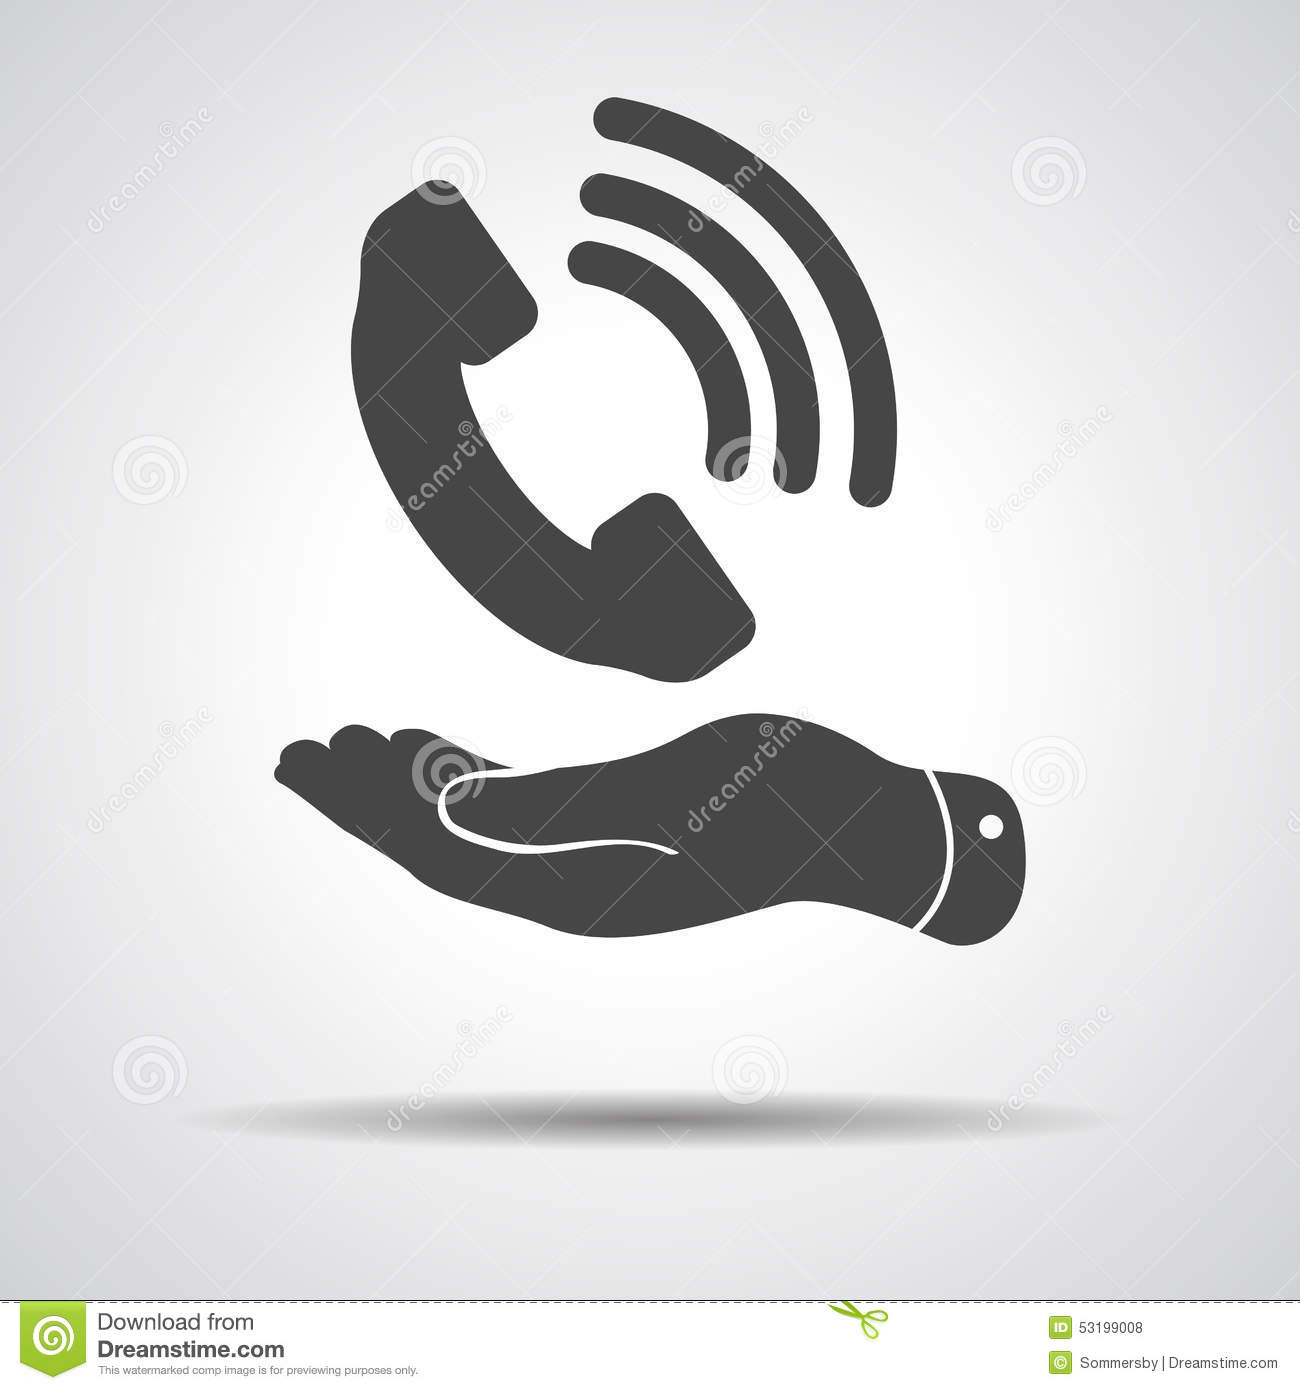 Flat hand showing black phone receiver icon